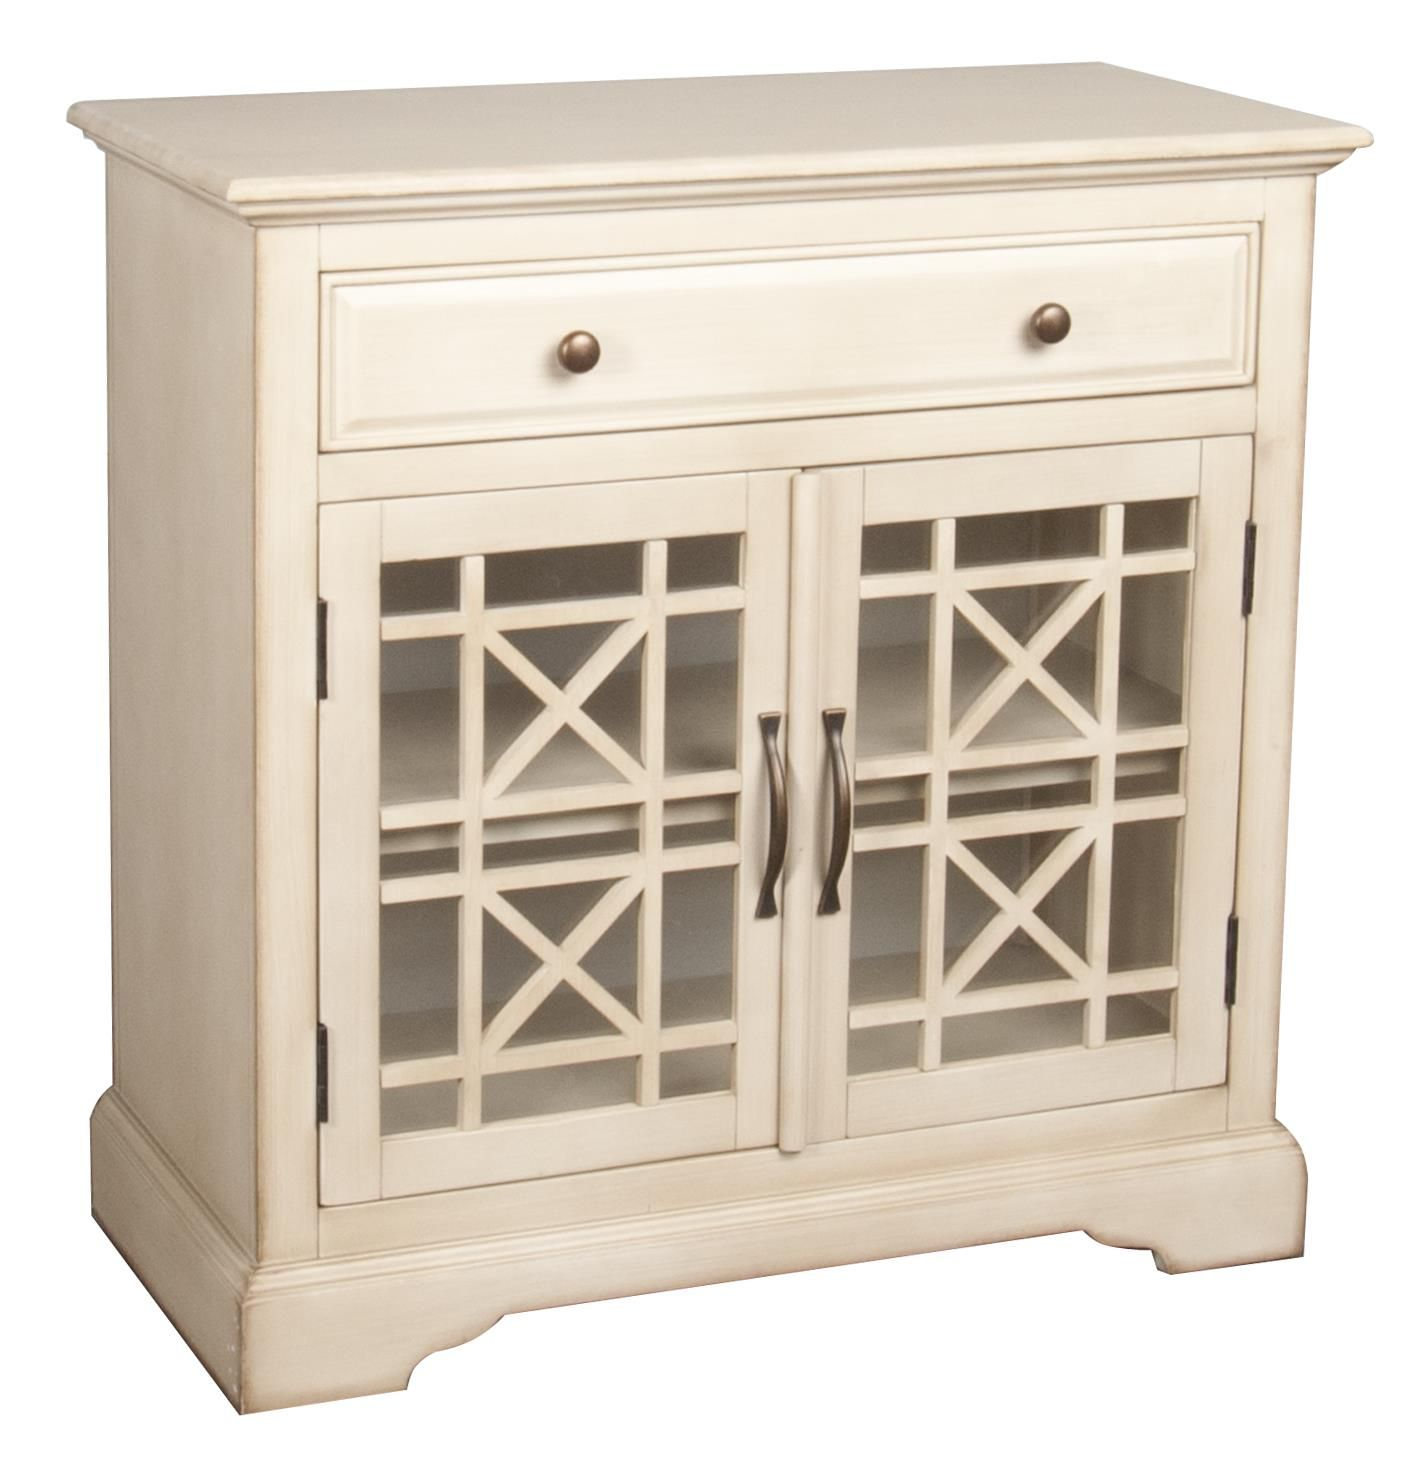 Limetree Cabinet By Jofran At Morris Home Antique White Cabinets Furniture Cabinet